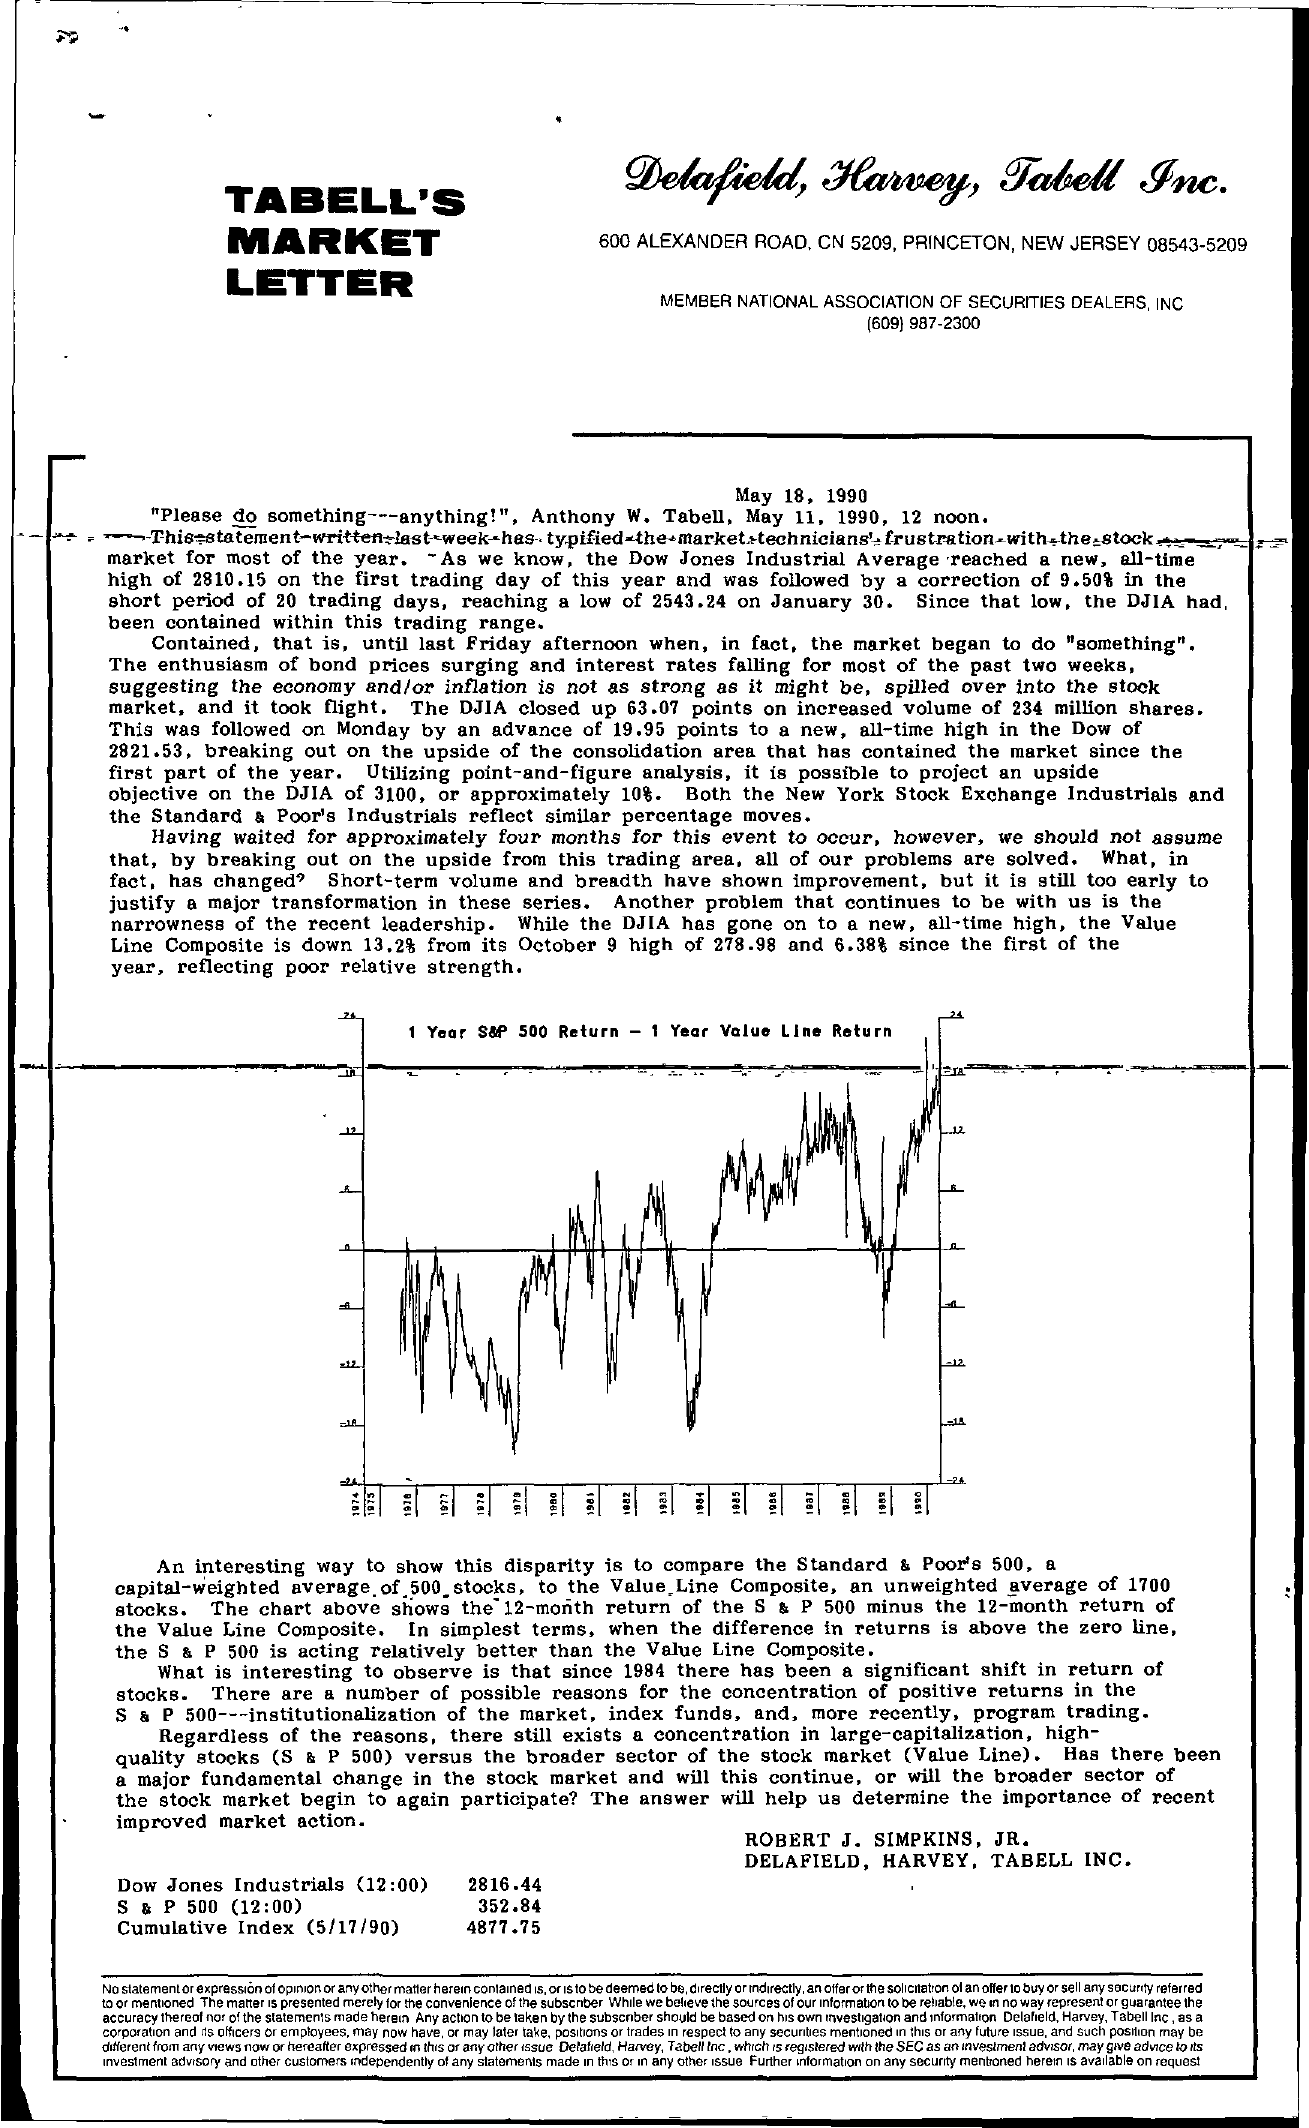 Tabell's Market Letter - May 18, 1990